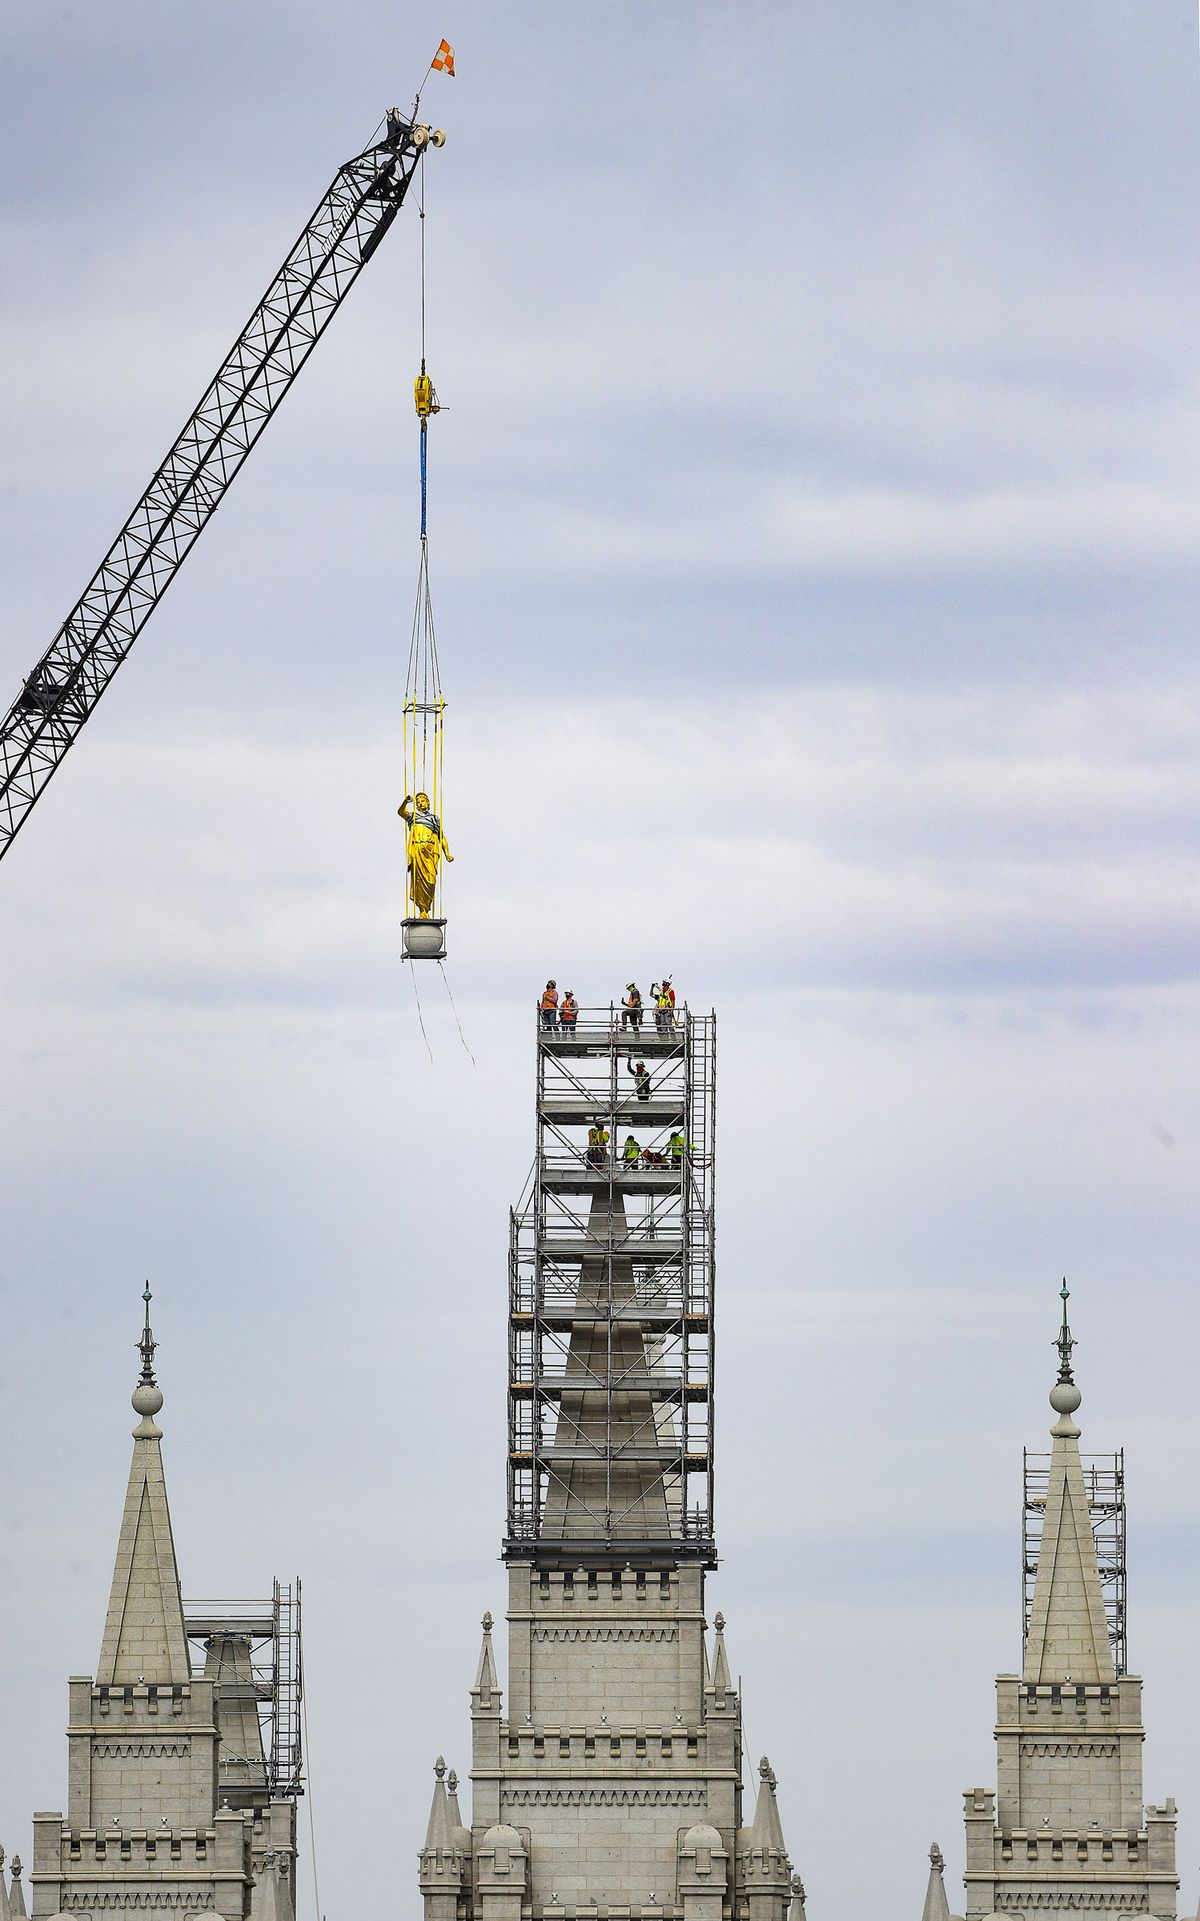 The Angel Moroni statue is temporarily removed by crane from atop the Salt Lake Temple of The Church of Jesus Christ of Latter-day Saints in Salt Lake City on Monday, May 18, 2020.